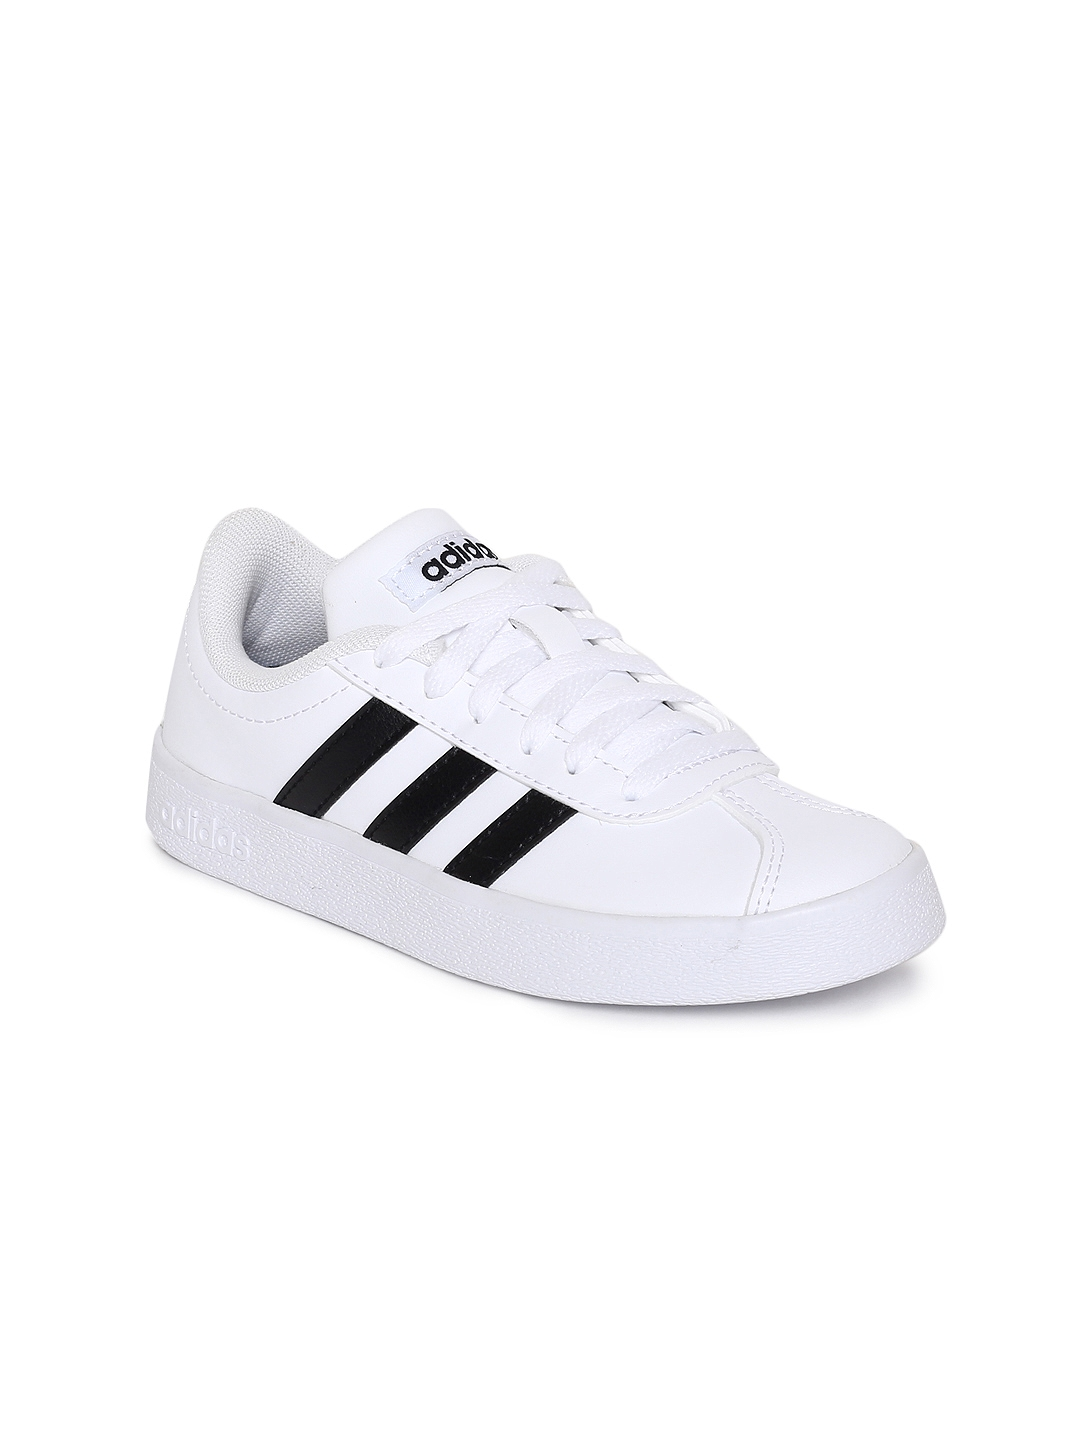 Buy ADIDAS Kids White Solid VL COURT 2.0 K Tennis Shoes - Casual ... 23fb172283bb